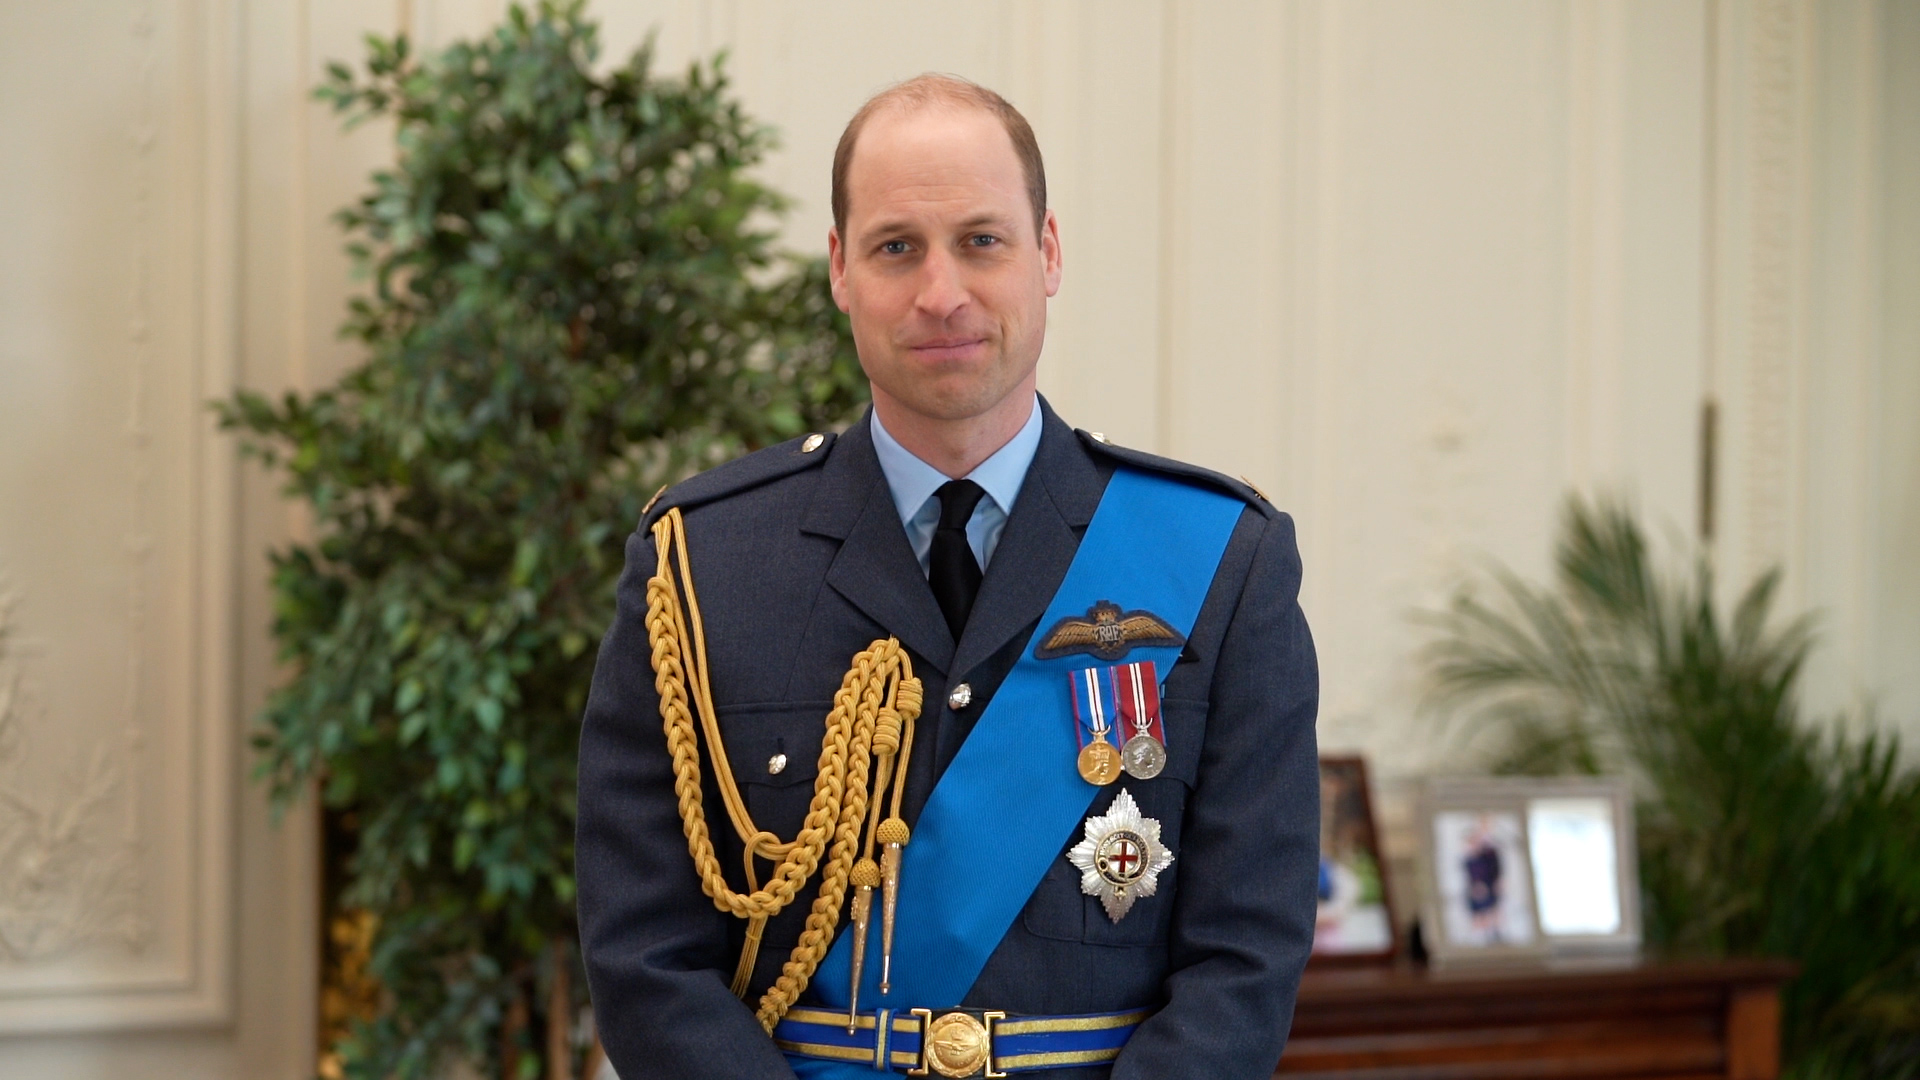 Prince William Shares Video to Celebrate Century of Australian Royal Air Force